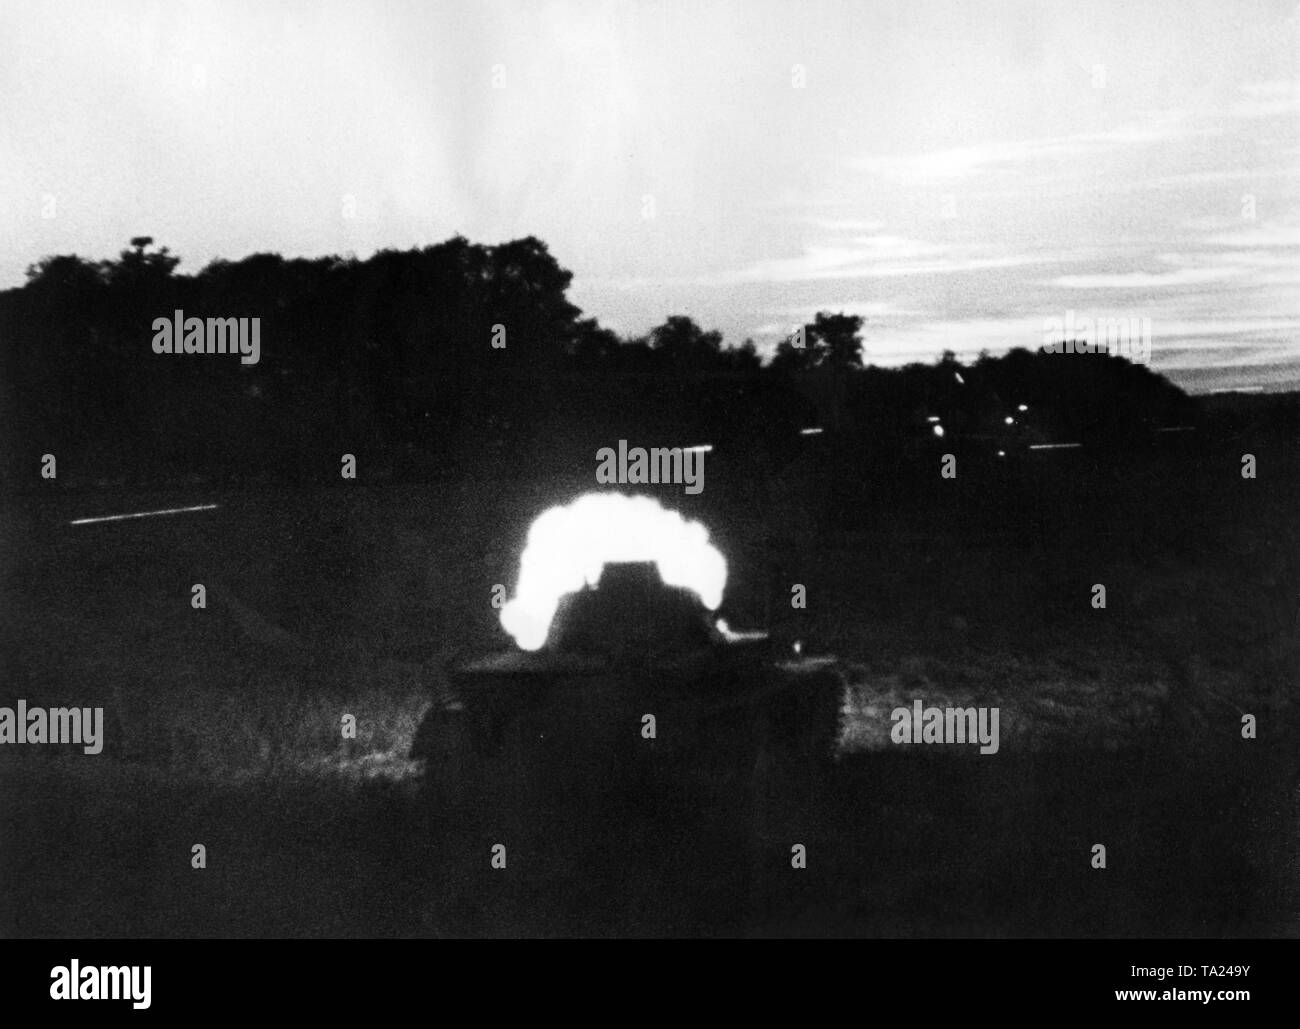 A German Panzer III opens fire during a night battle. Probably a moviestill from Sieg im Westen (Victory in the West). Stock Photo